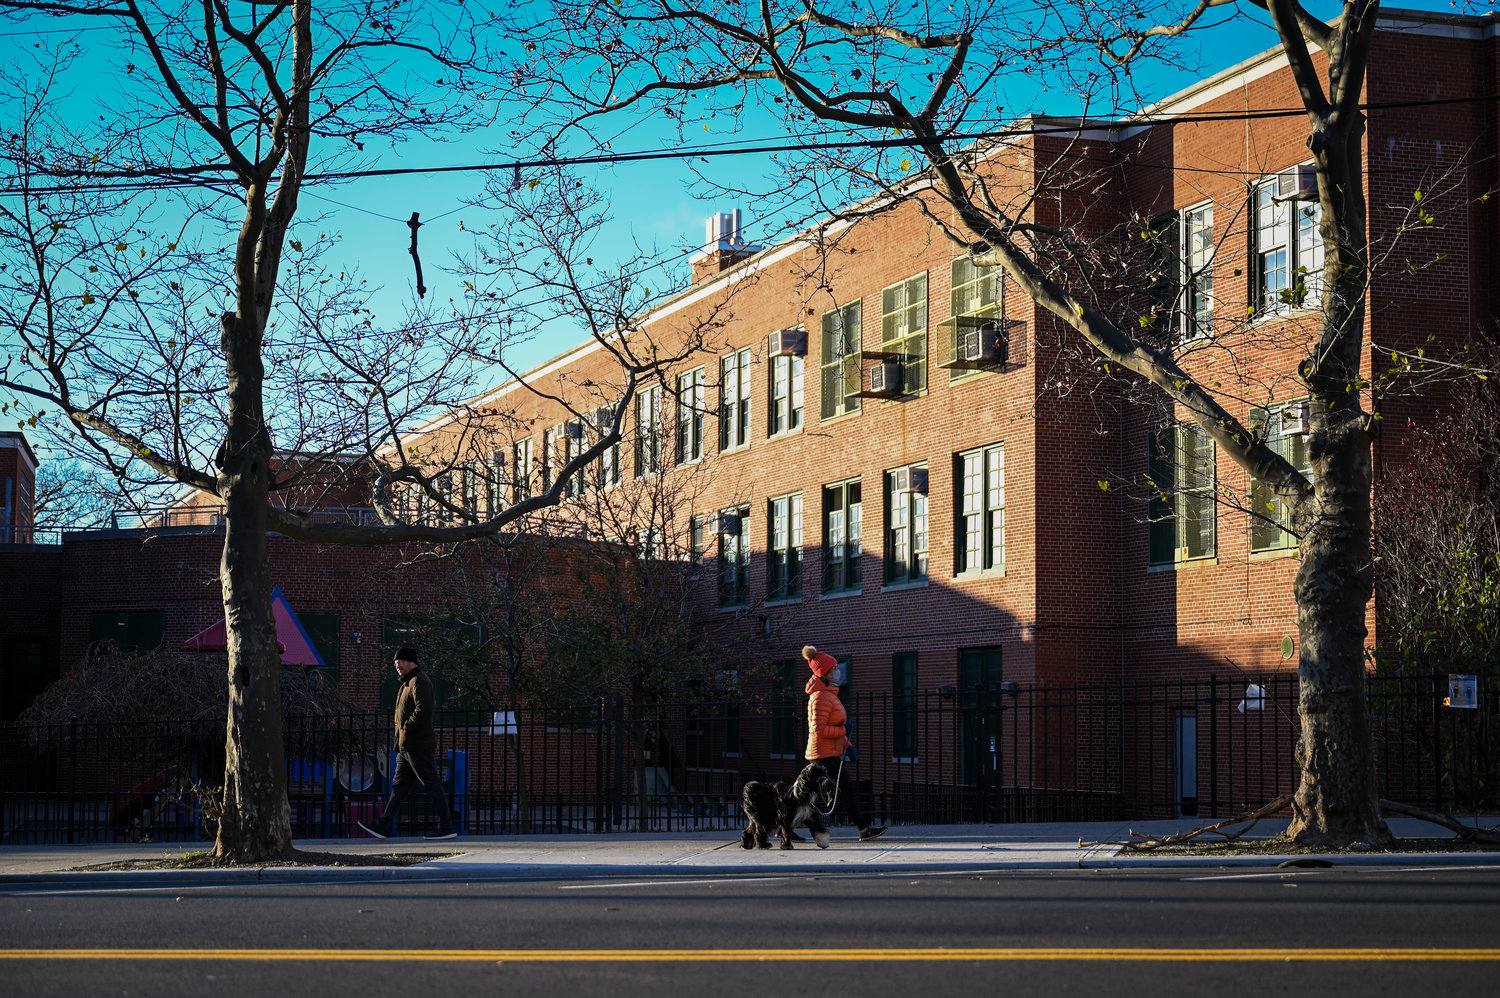 Public schools experienced a 'phased-in' reopening process in late September and early October. But come November, the buildings shuttered once again after the city's weekly positive coronavirus test rate reached 3 percent.